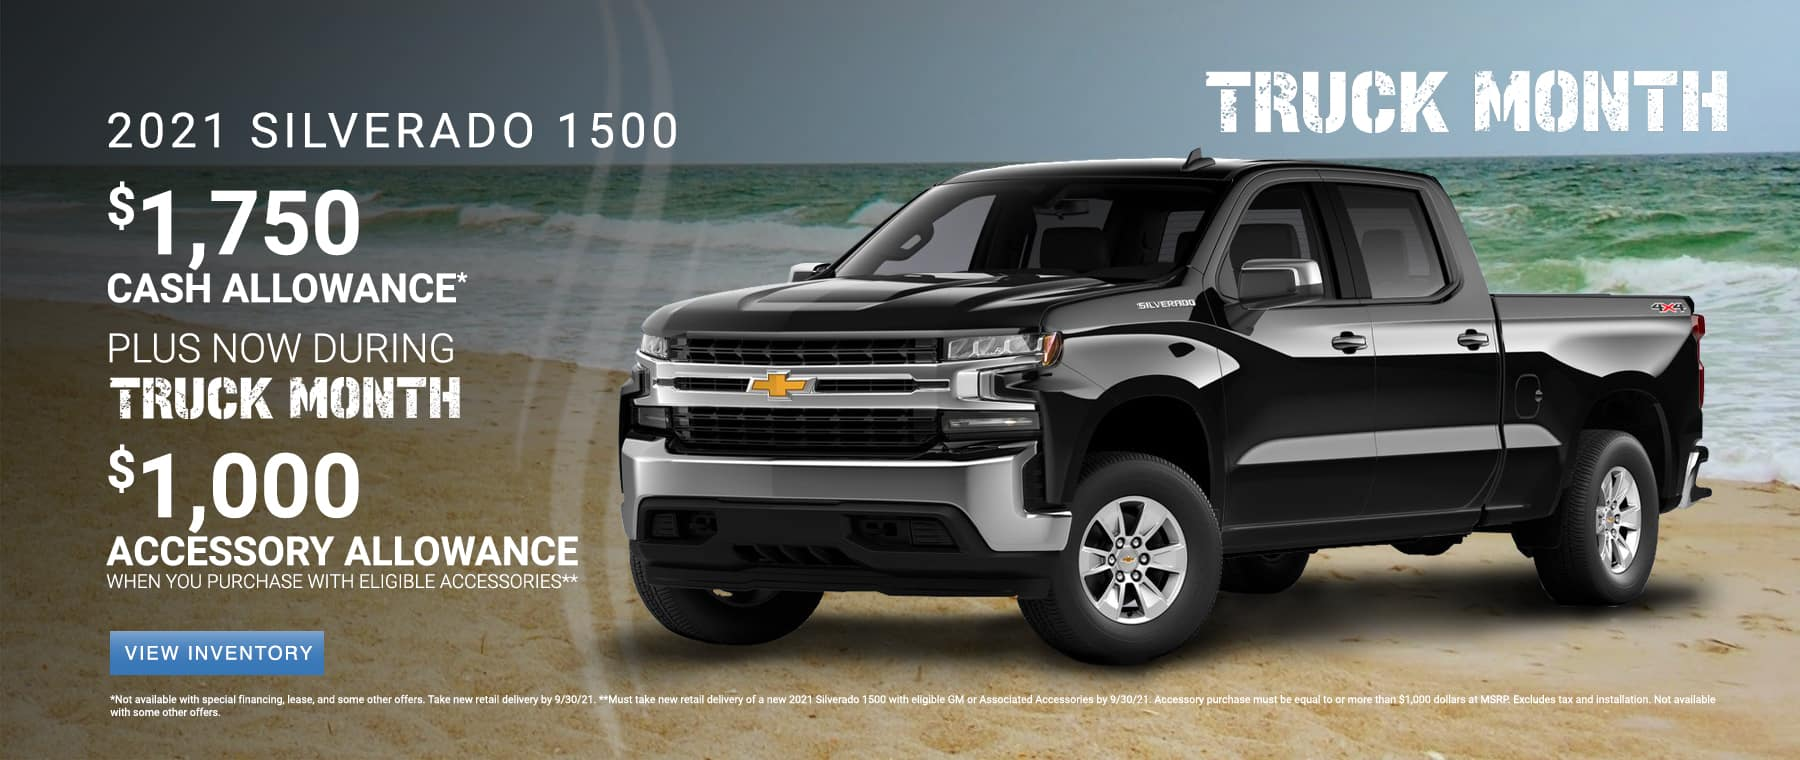 Truck Month deals are here!